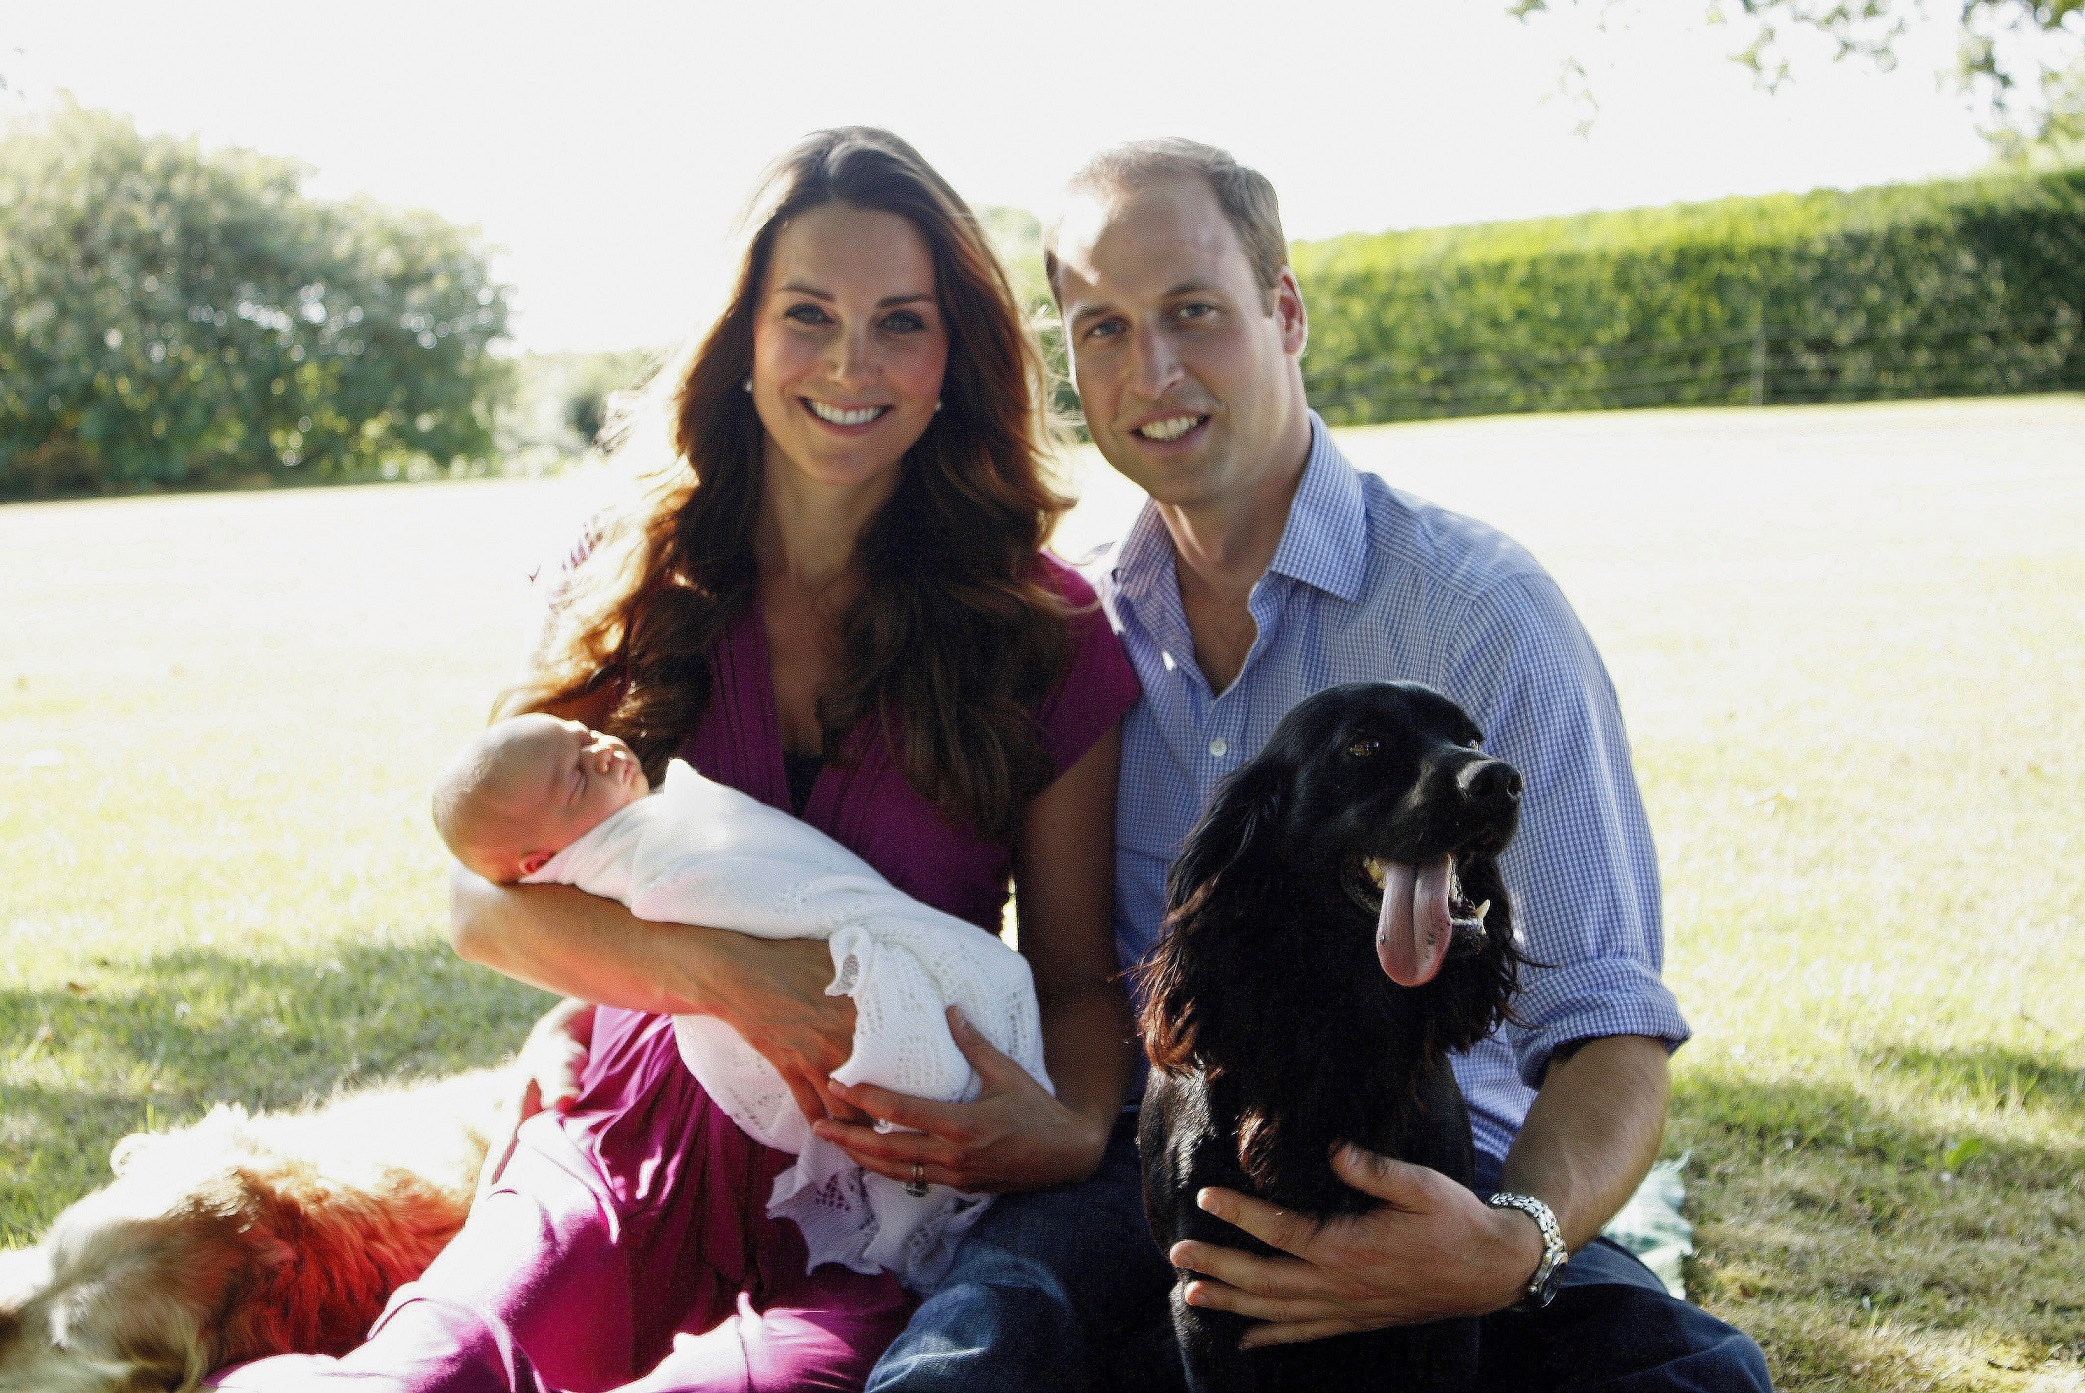 Will, Kate, and their pets